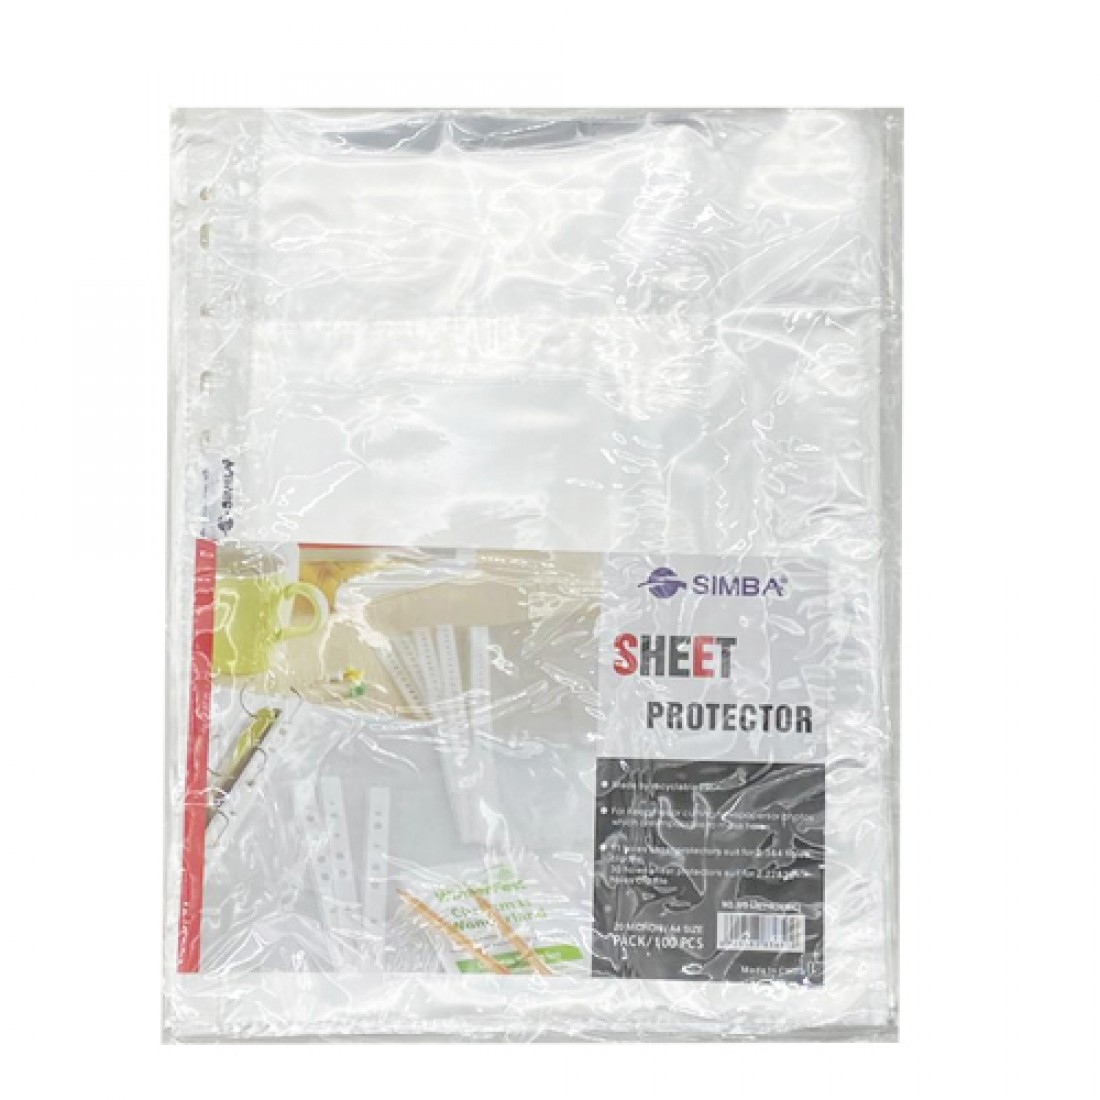 Documents Covers, SIMBA, Punched Sheet Pockets, 20 Micron, A4, Transparent, 100 PC/Pack